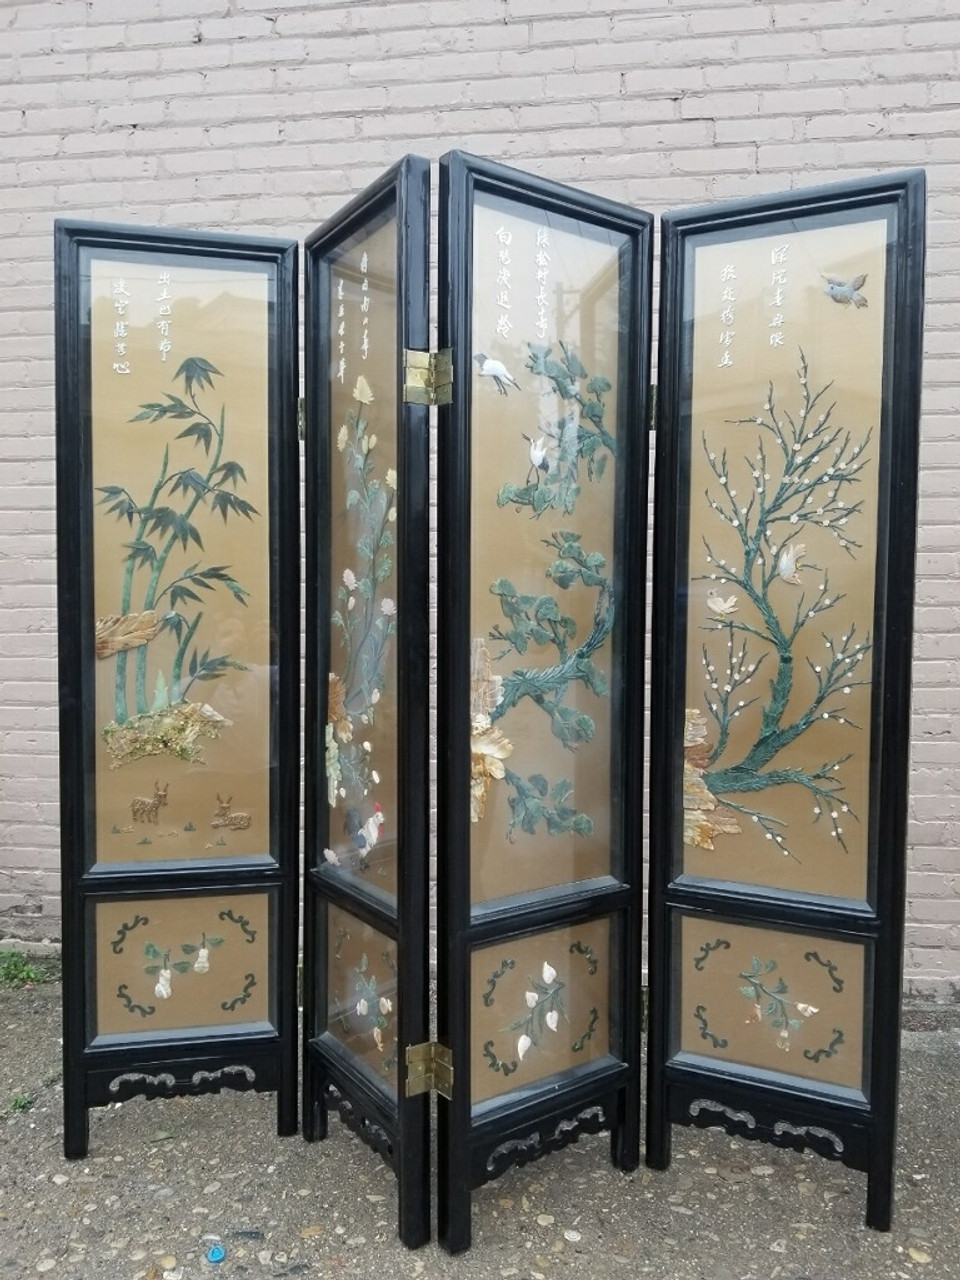 Johnson Carved Furniture Co Asian Hand Painted Glass Enclosed Mother Of Pearl Design 4 Panel Screen Room Divider Vintage Grind House